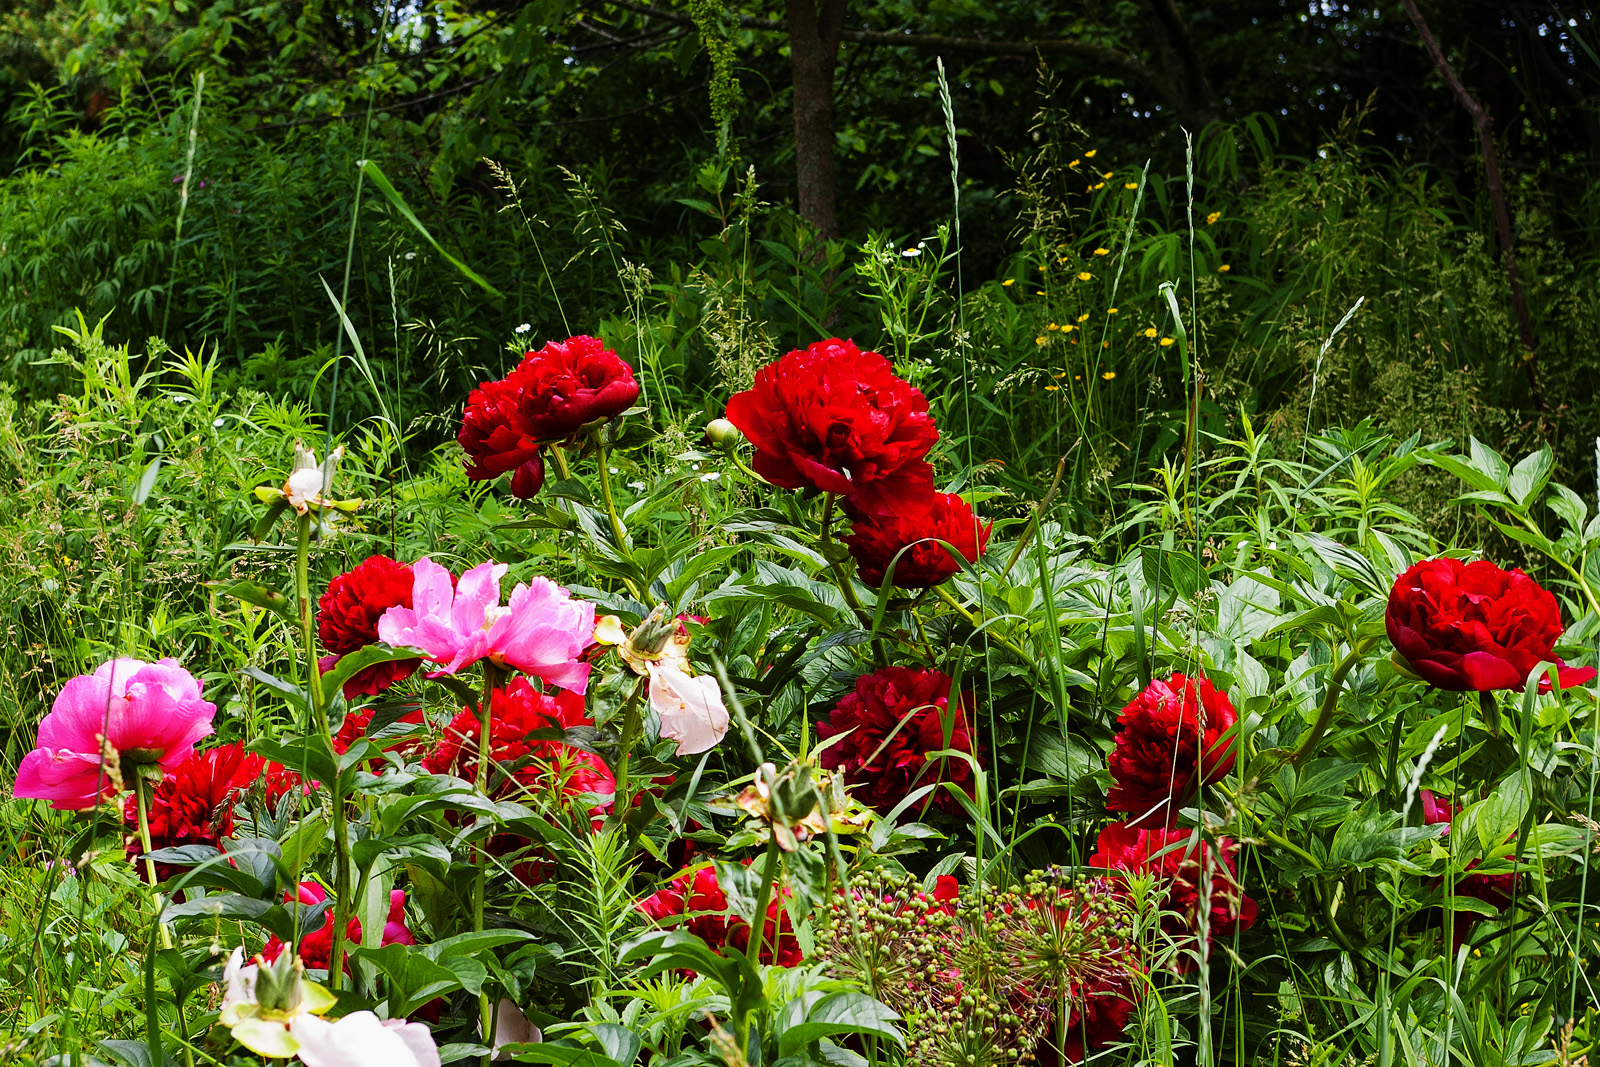 Red and Pink peonies in full bloom